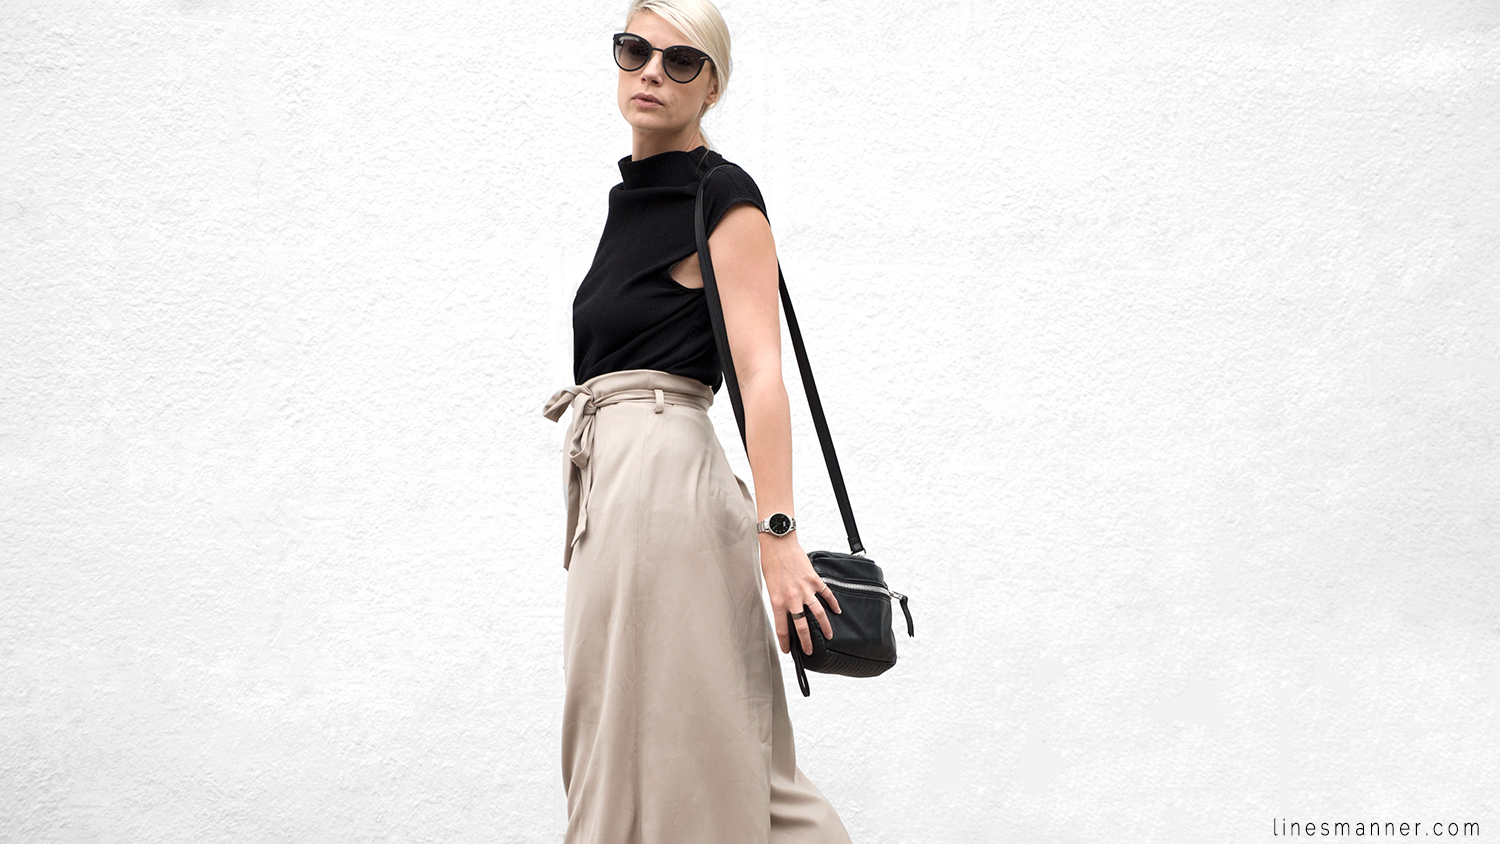 Lines-Manner-Neutrals-Quality-Lora_Gene-Wide_Leg_Pant-Modern-Sophistication-Tailored-Essentials-Details-Simplicity-Summer_vibes-Volume-Proportion-Flowy-6